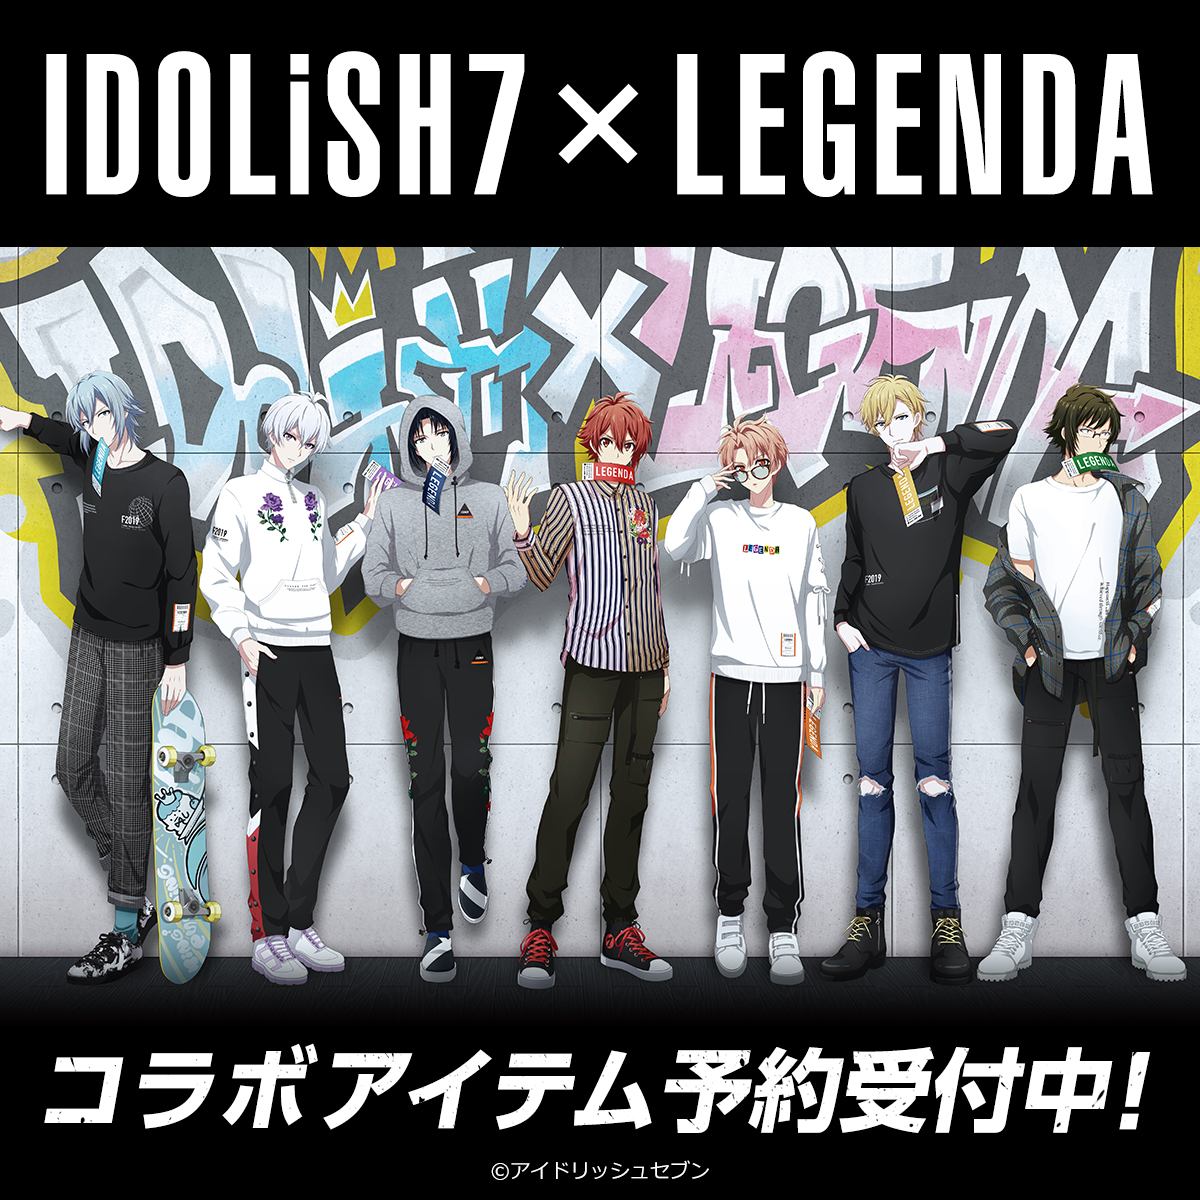 IDOLish7×LEGENDA COLLABORATION